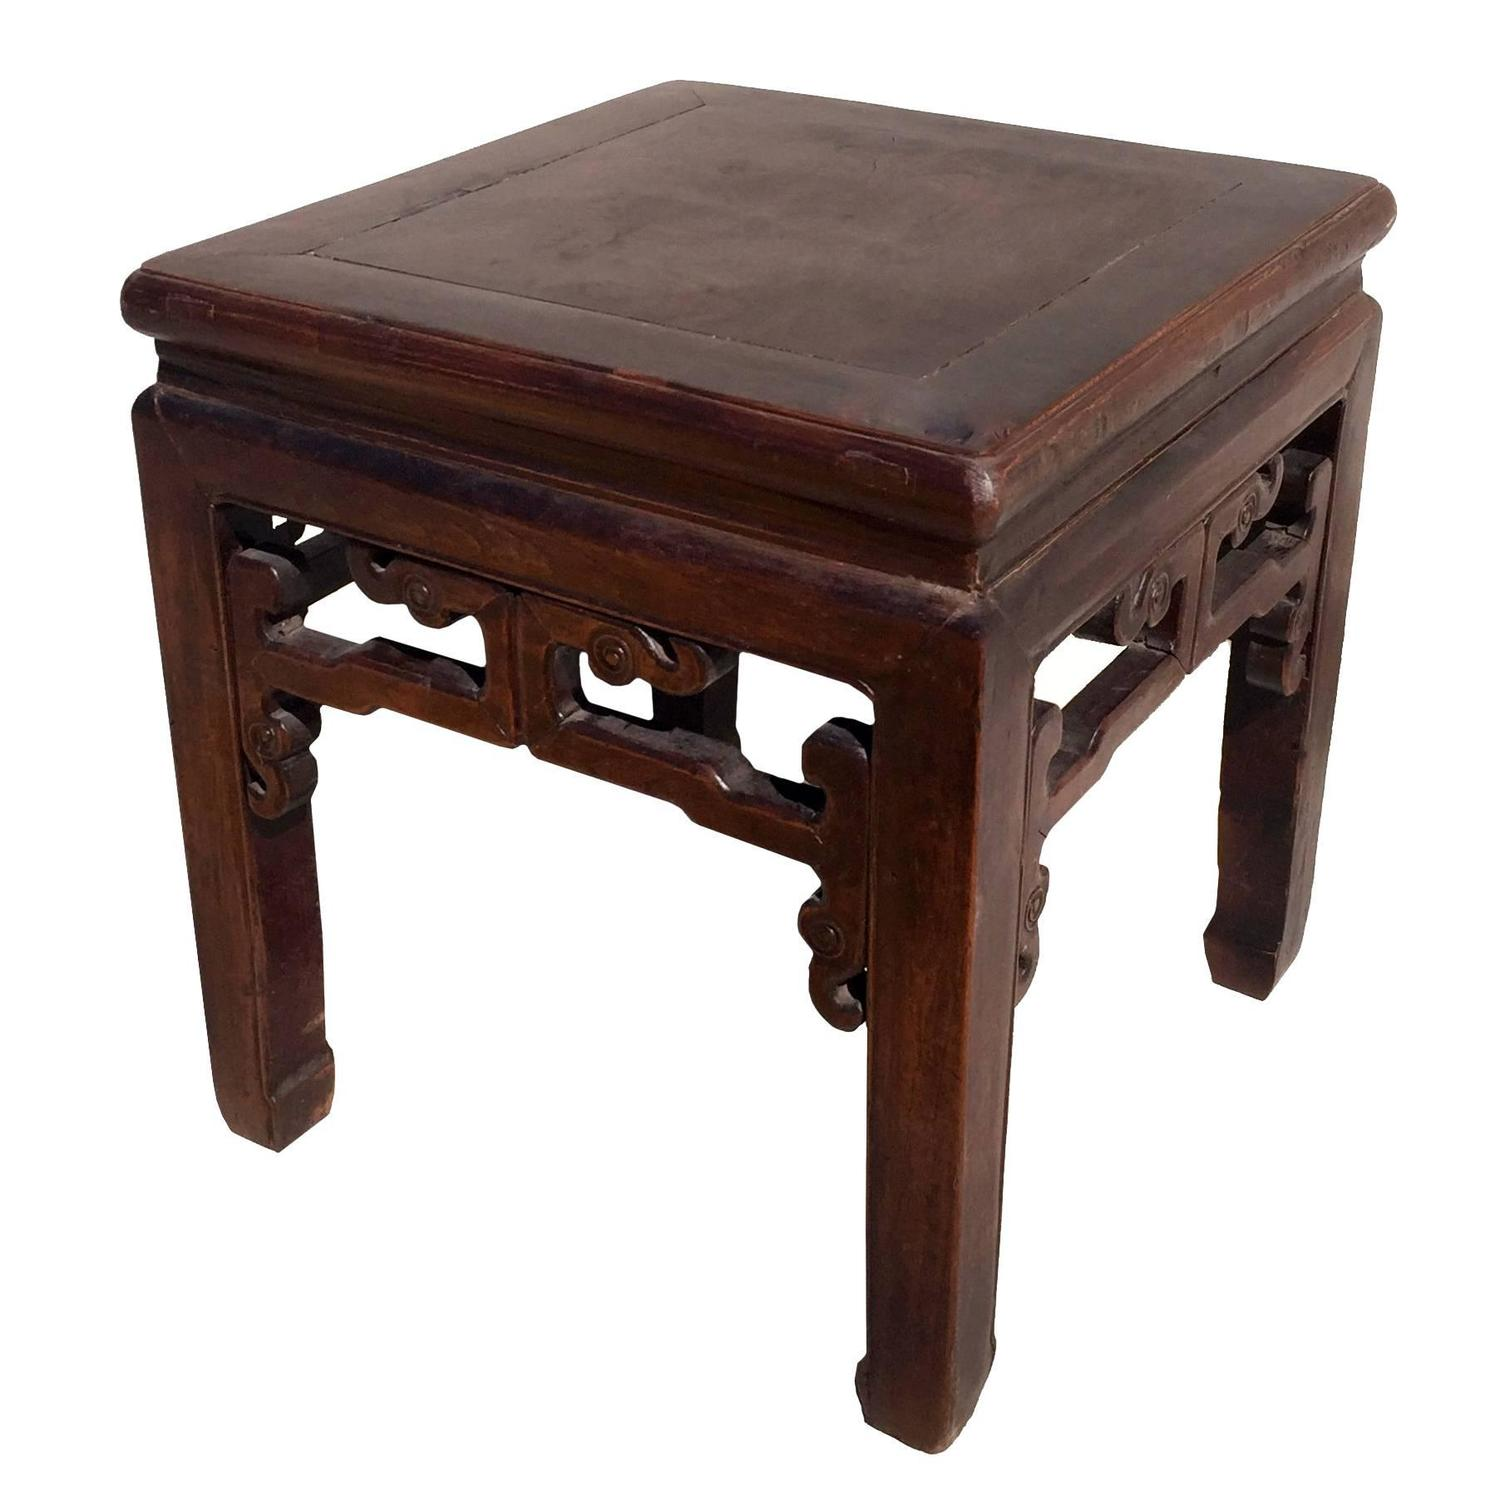 Table China: Antique Chinese Square Stool Or Small Table For Sale At